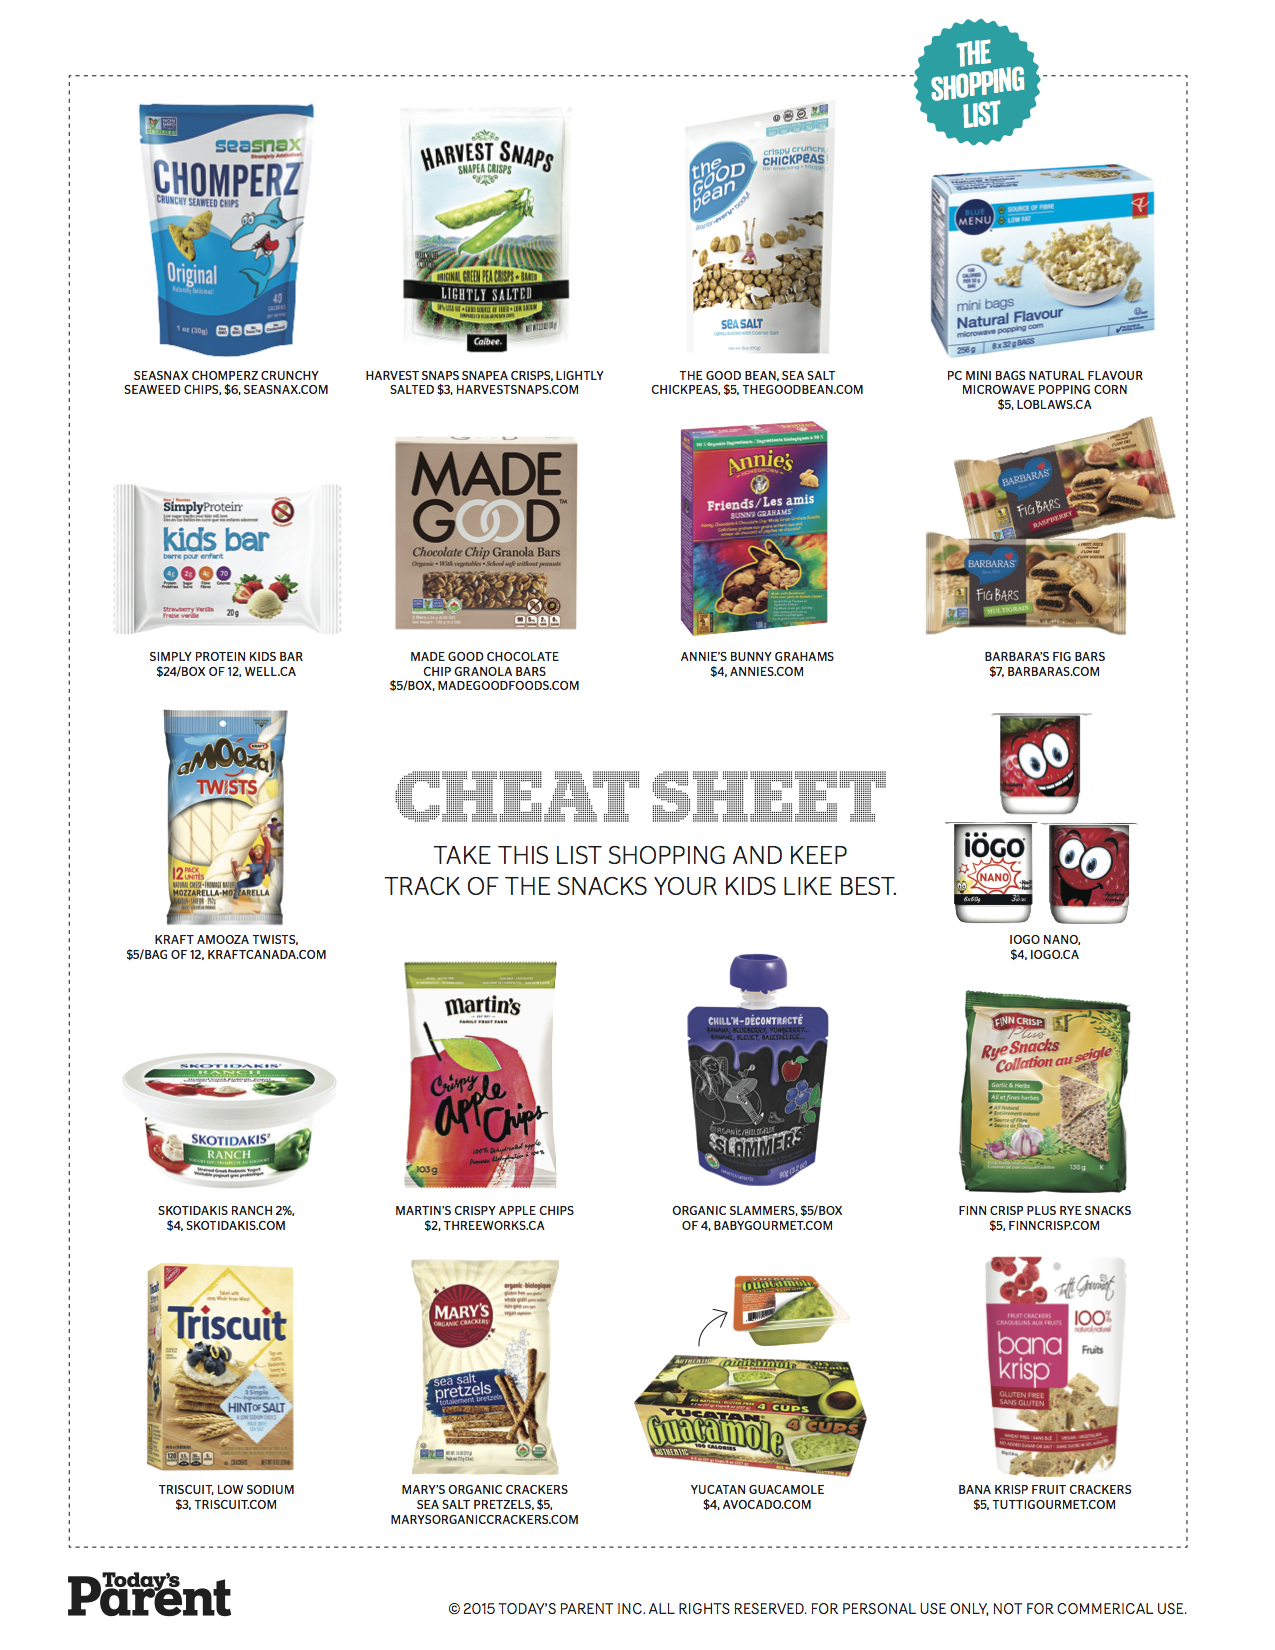 Today's Parent Snack Cheat Sheet